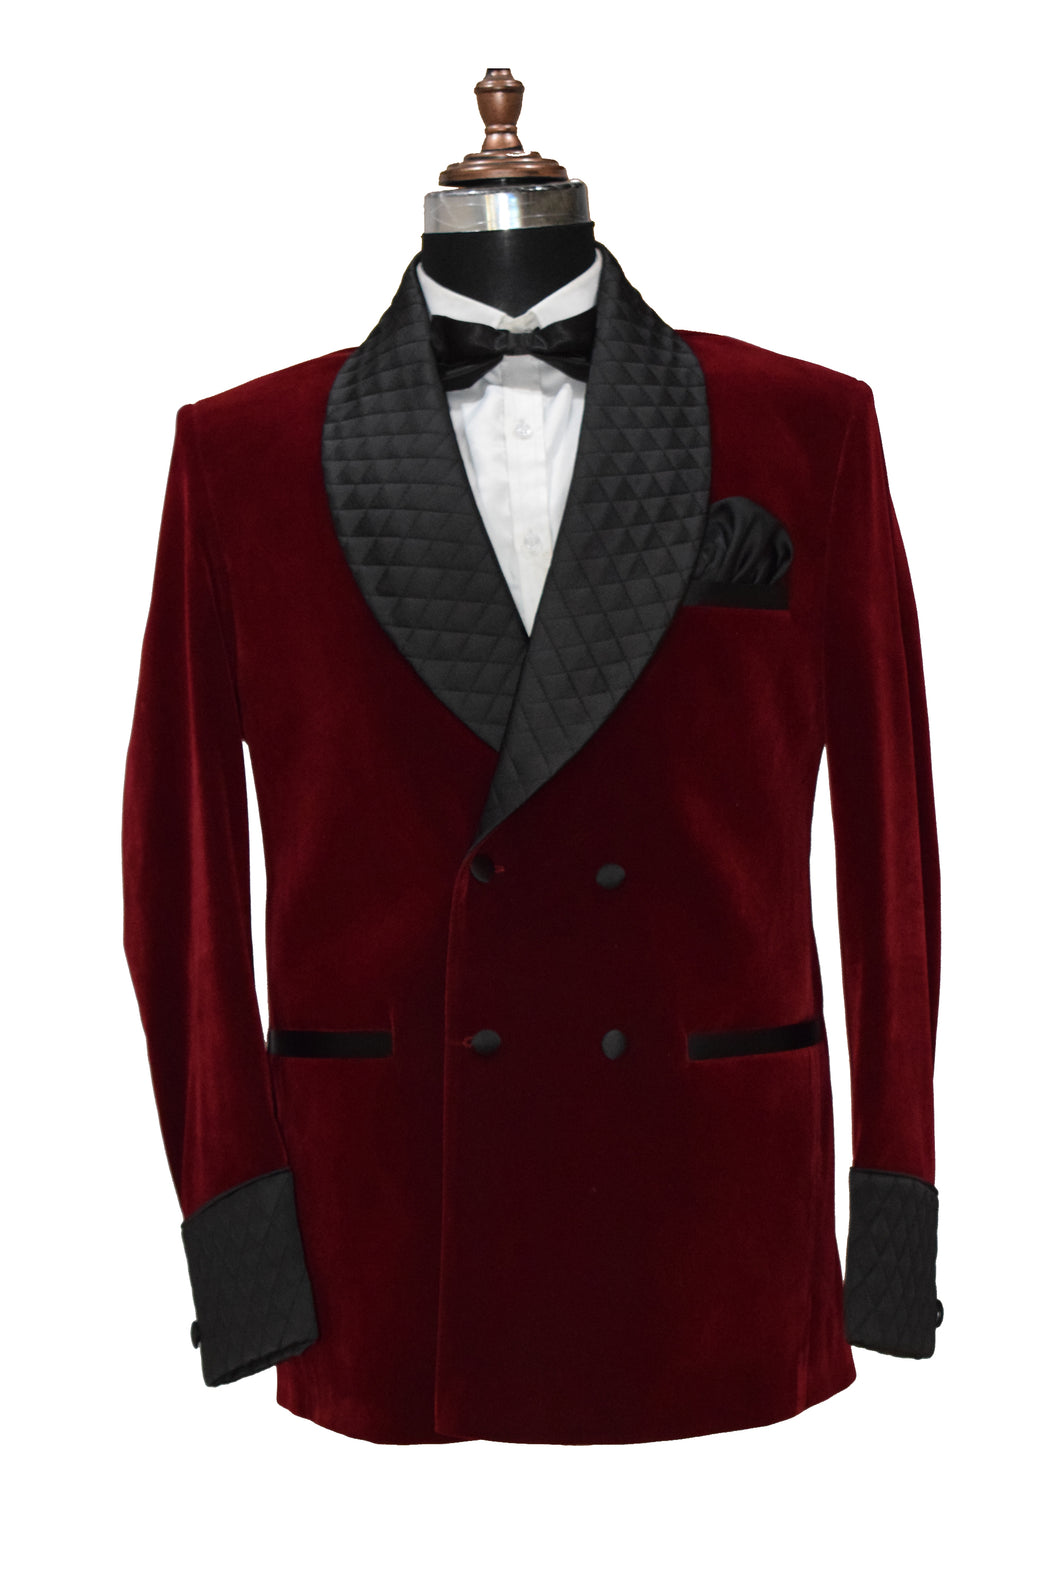 Men Maroon Smoking Jacket Wedding Party Wear Blazer - TrendsfashionIN